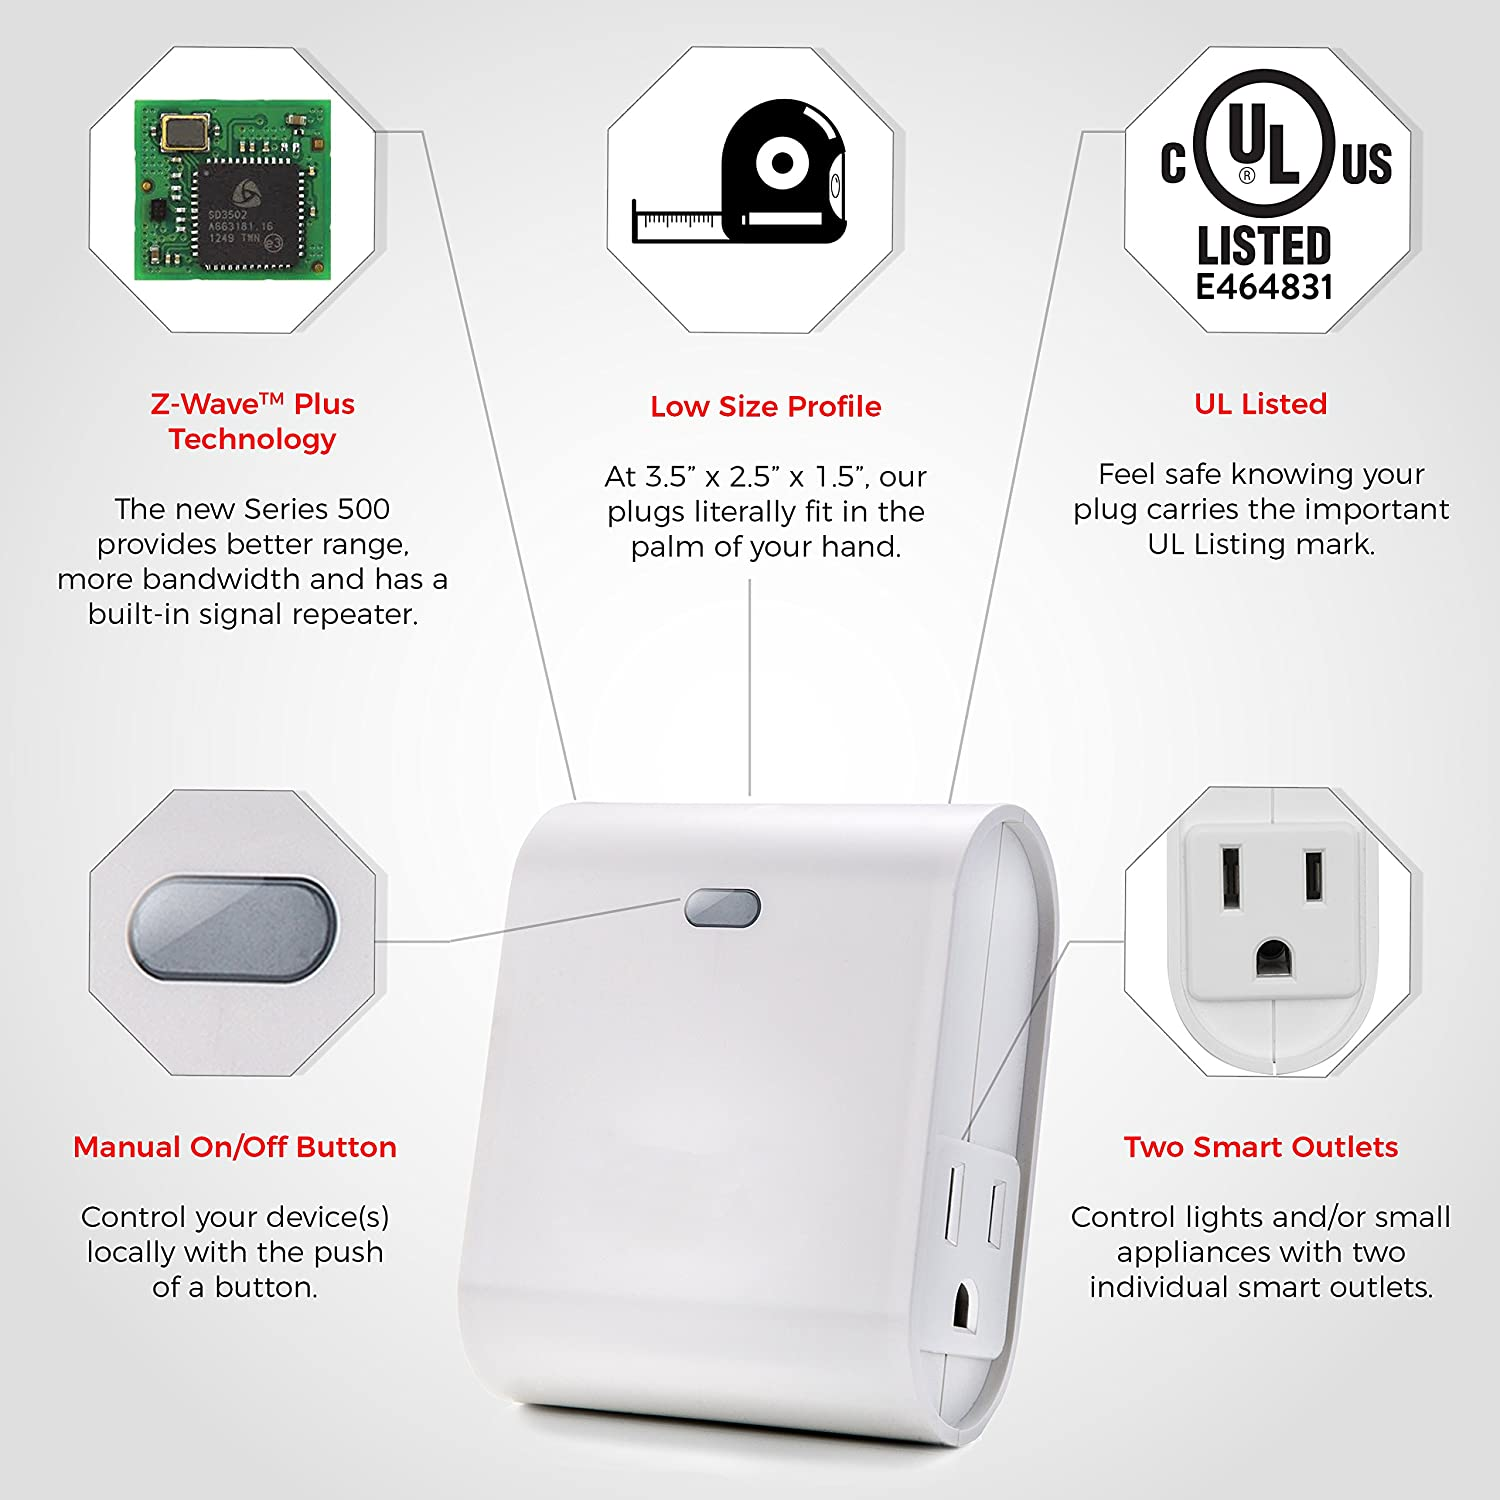 Dual Z-Wave Plug w/Built-In Repeater | Control 2 Outlets ...